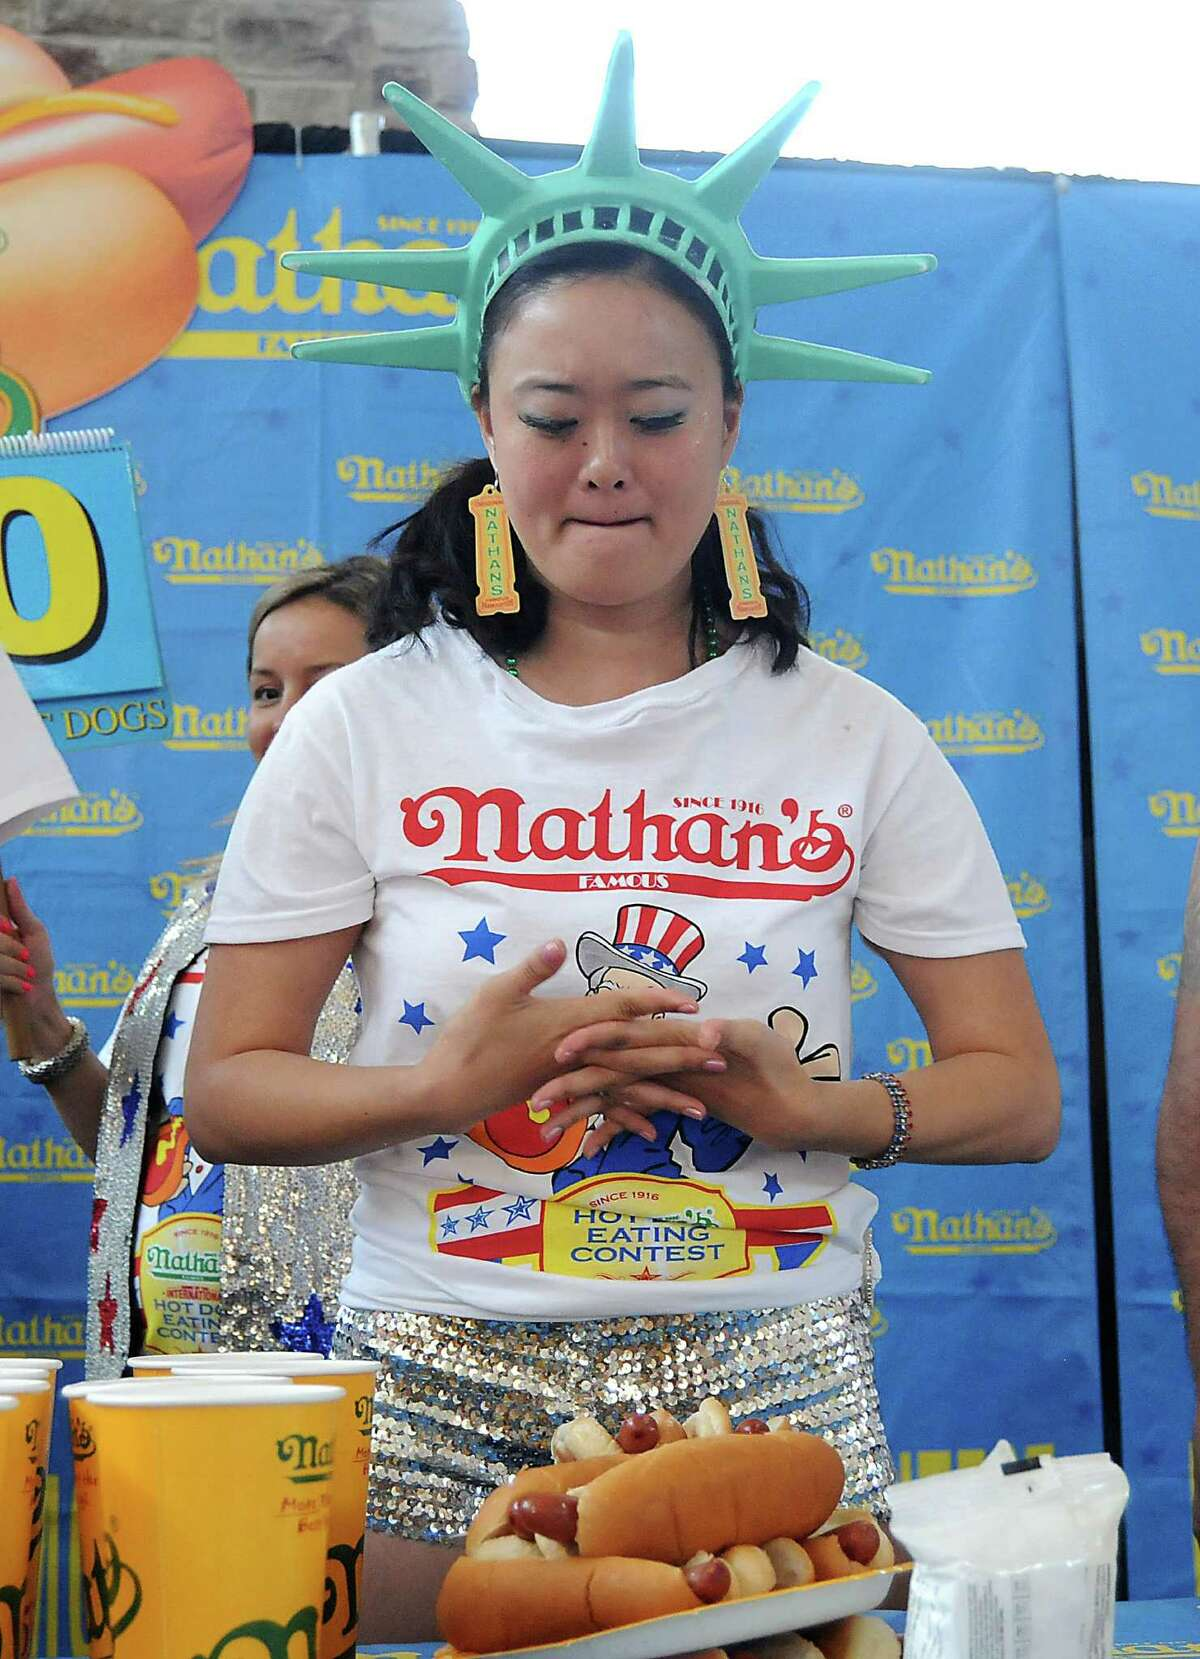 Mary Bowers takes a deep breath before the start of Saturday's hot-dog-eating contest at Memorial City Mall.